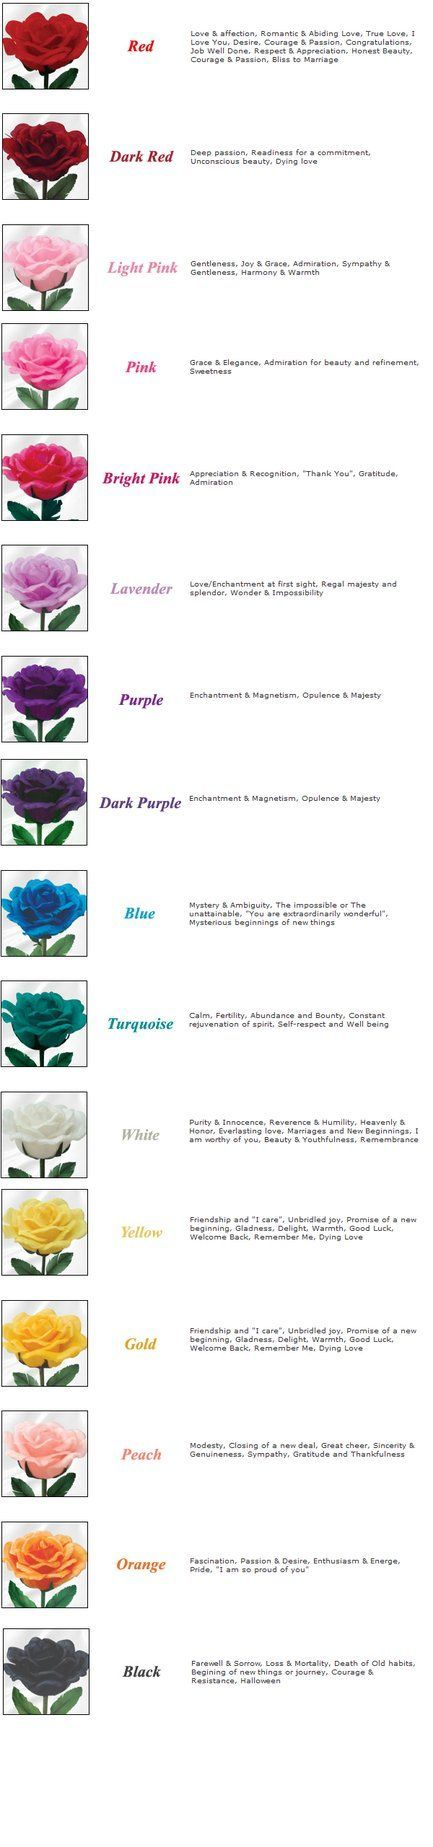 Rose color meanings by kawaii panda aru524 on deviantart rose color meanings by kawaii panda aru524 on deviantart biocorpaavc Images